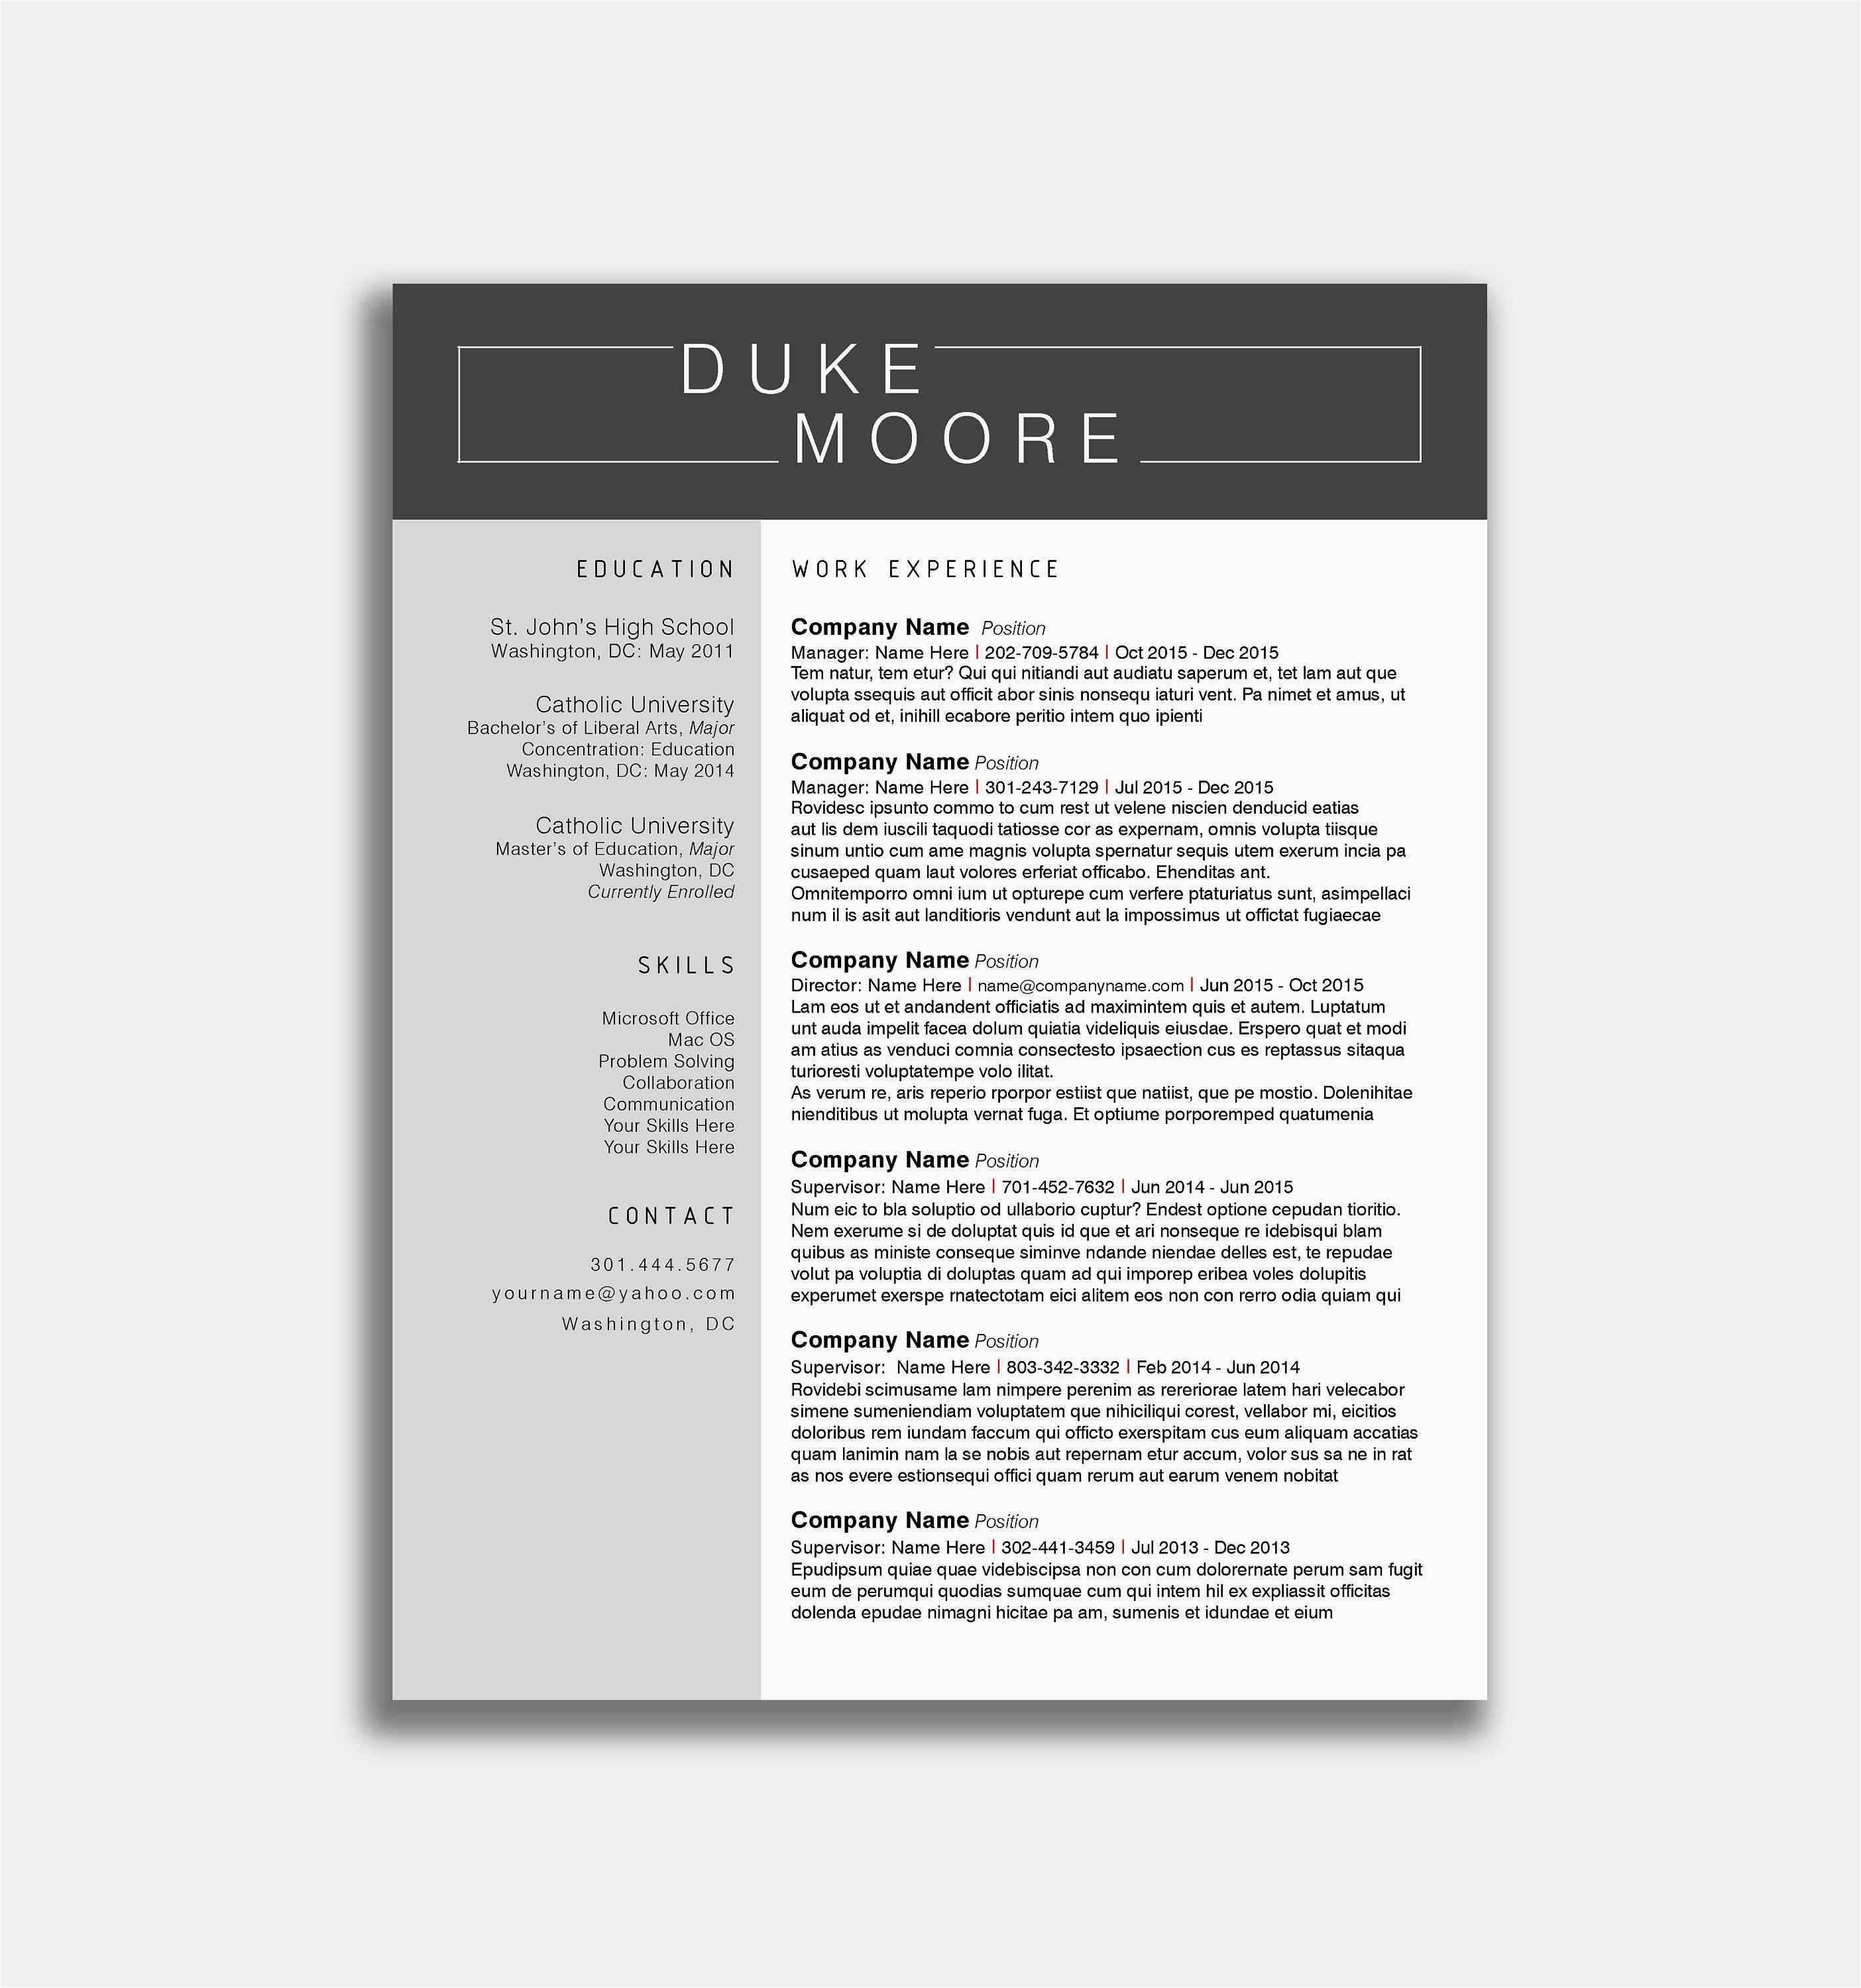 Dental assistant Resume Template Free - Dental assistant Resume Templates New Medical assistant Resume